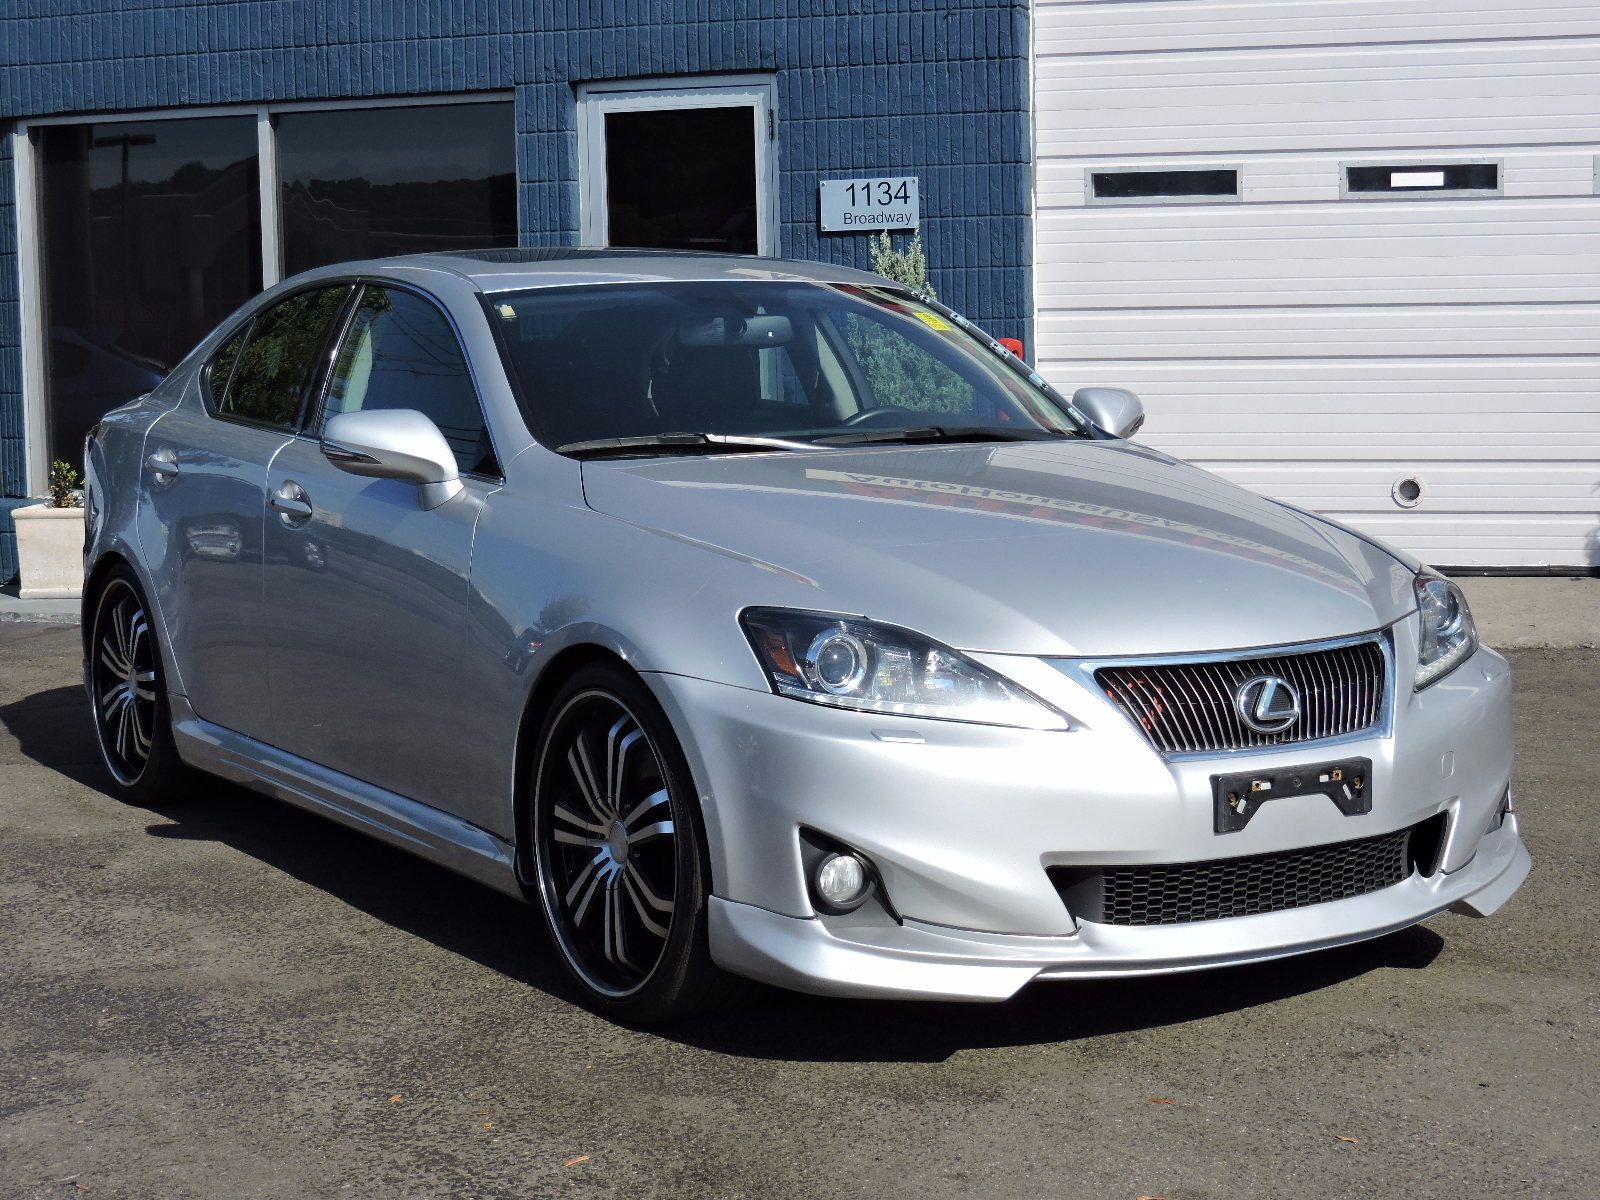 http://saugusautomall.com/uimages/vehicle/3350639/full/2011-Lexus-IS-350-JTHCE5C25B5000153-7384.jpeg